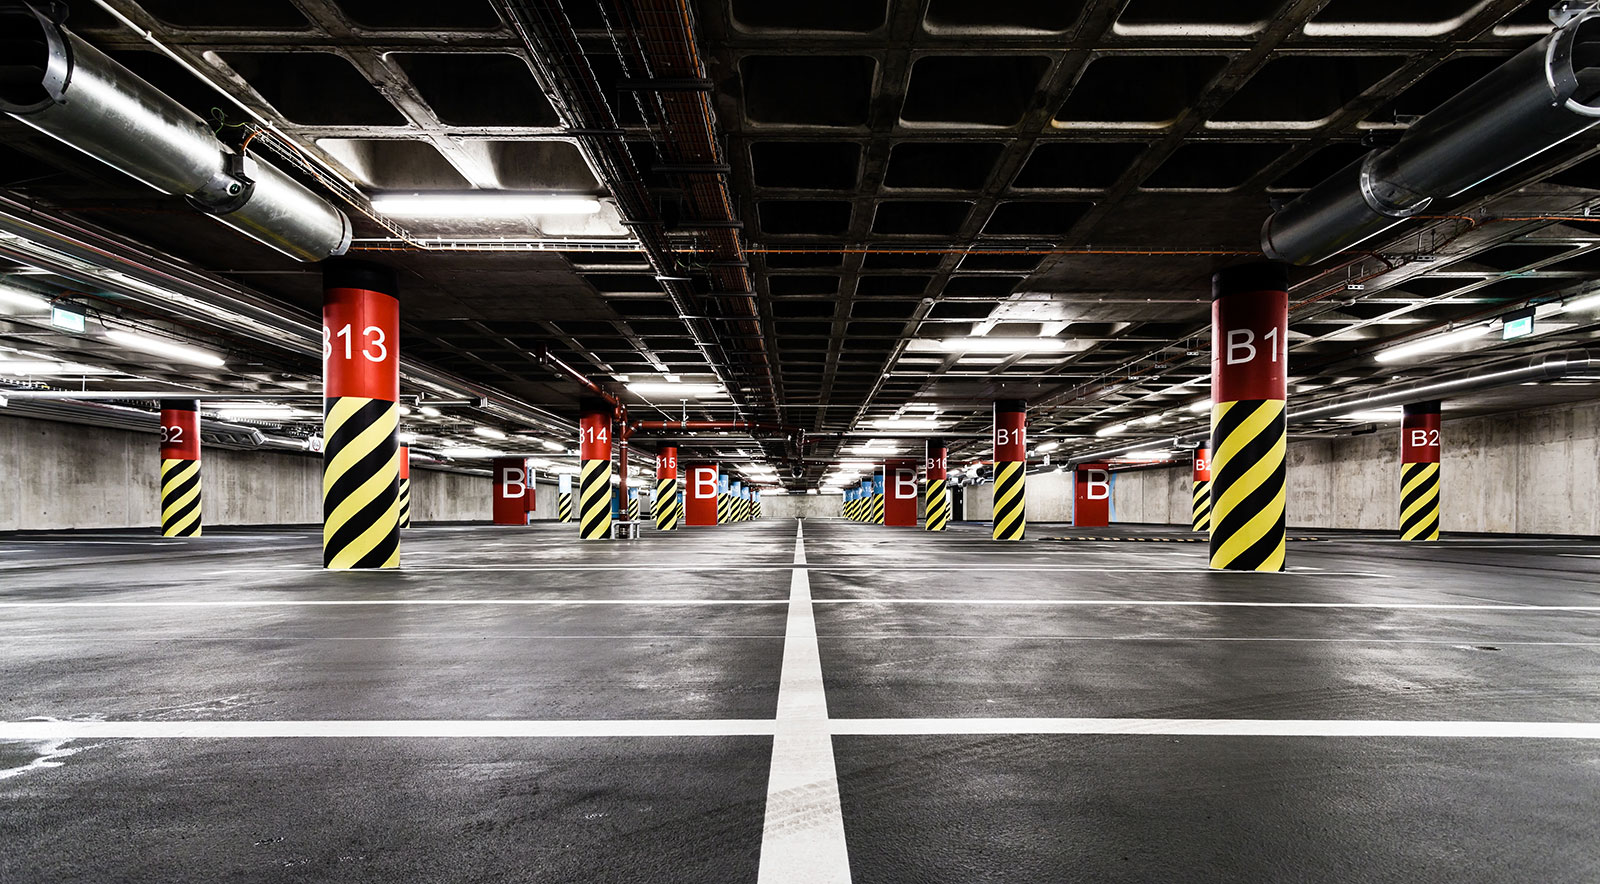 Led Lighting For Parking Garages And Parking Lots